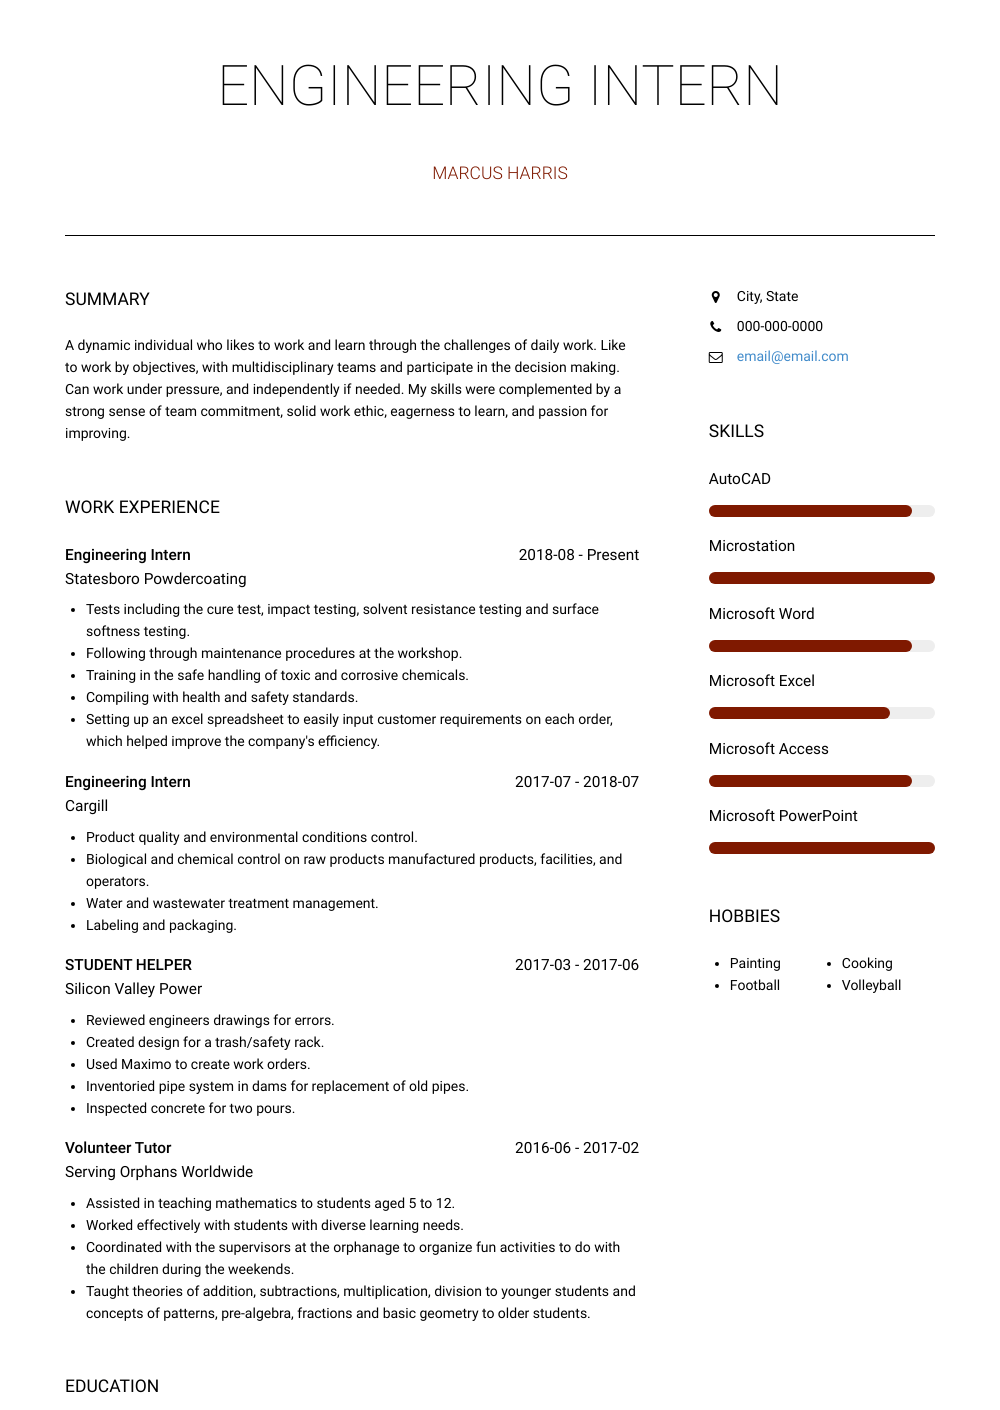 Engineering Intern Resume Samples And Templates Visualcv